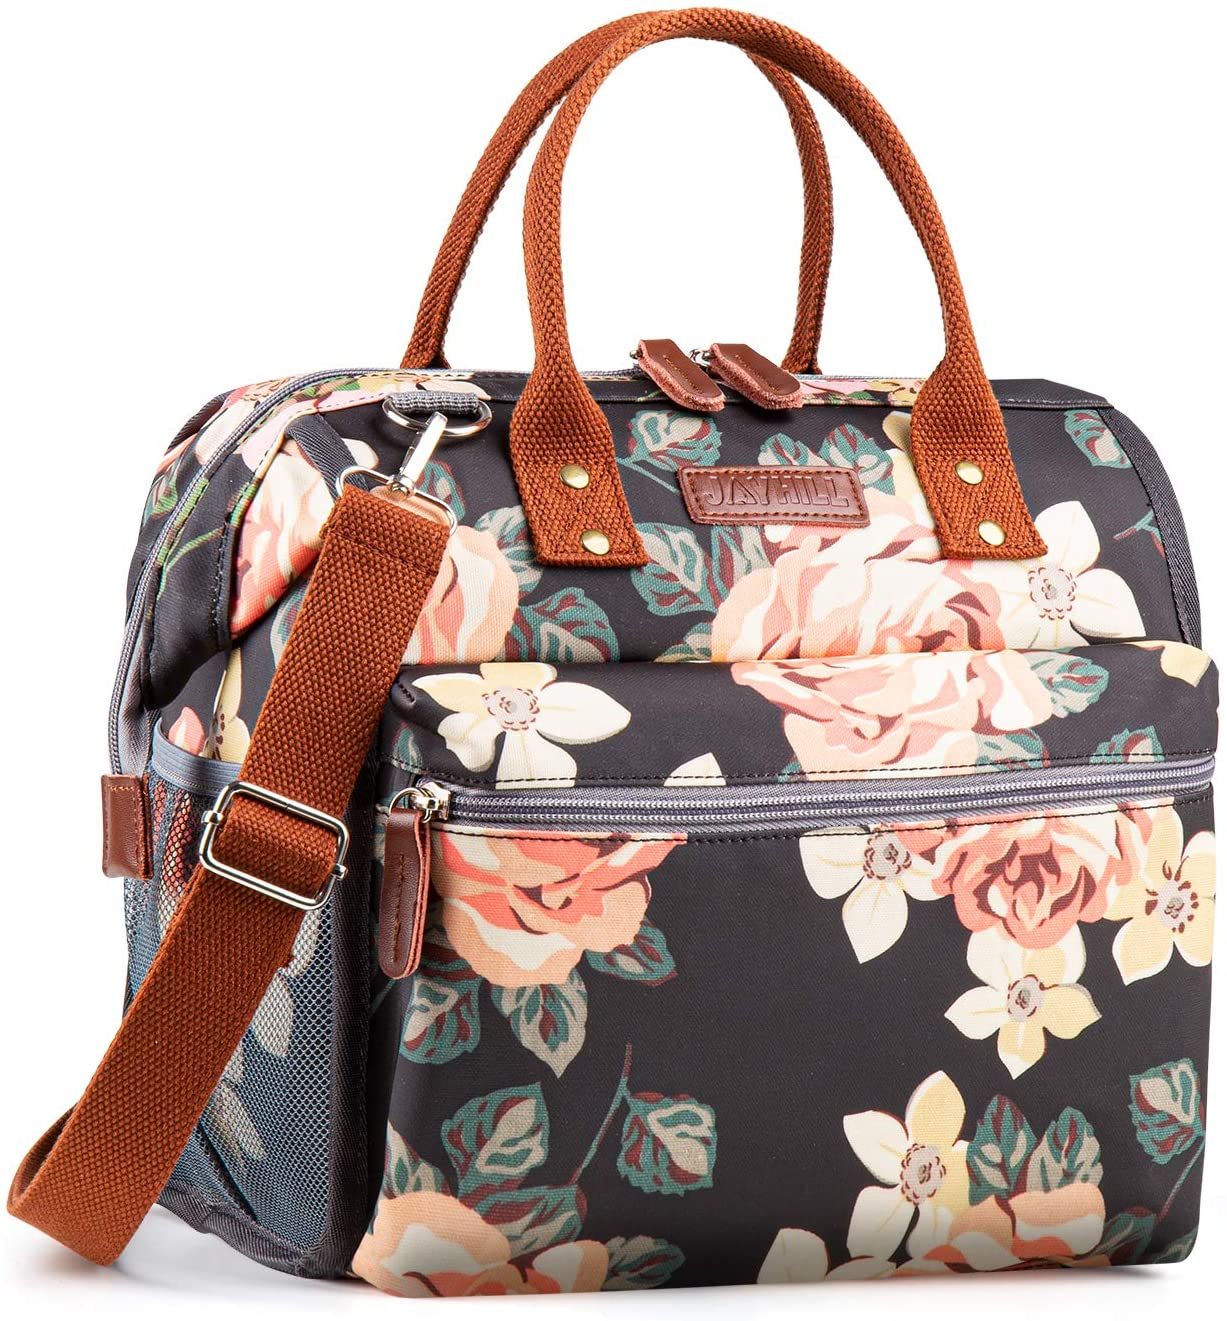 Floral Lunch Bags for Elegant Women Box Coole Insulated Bag Ranking TOP11